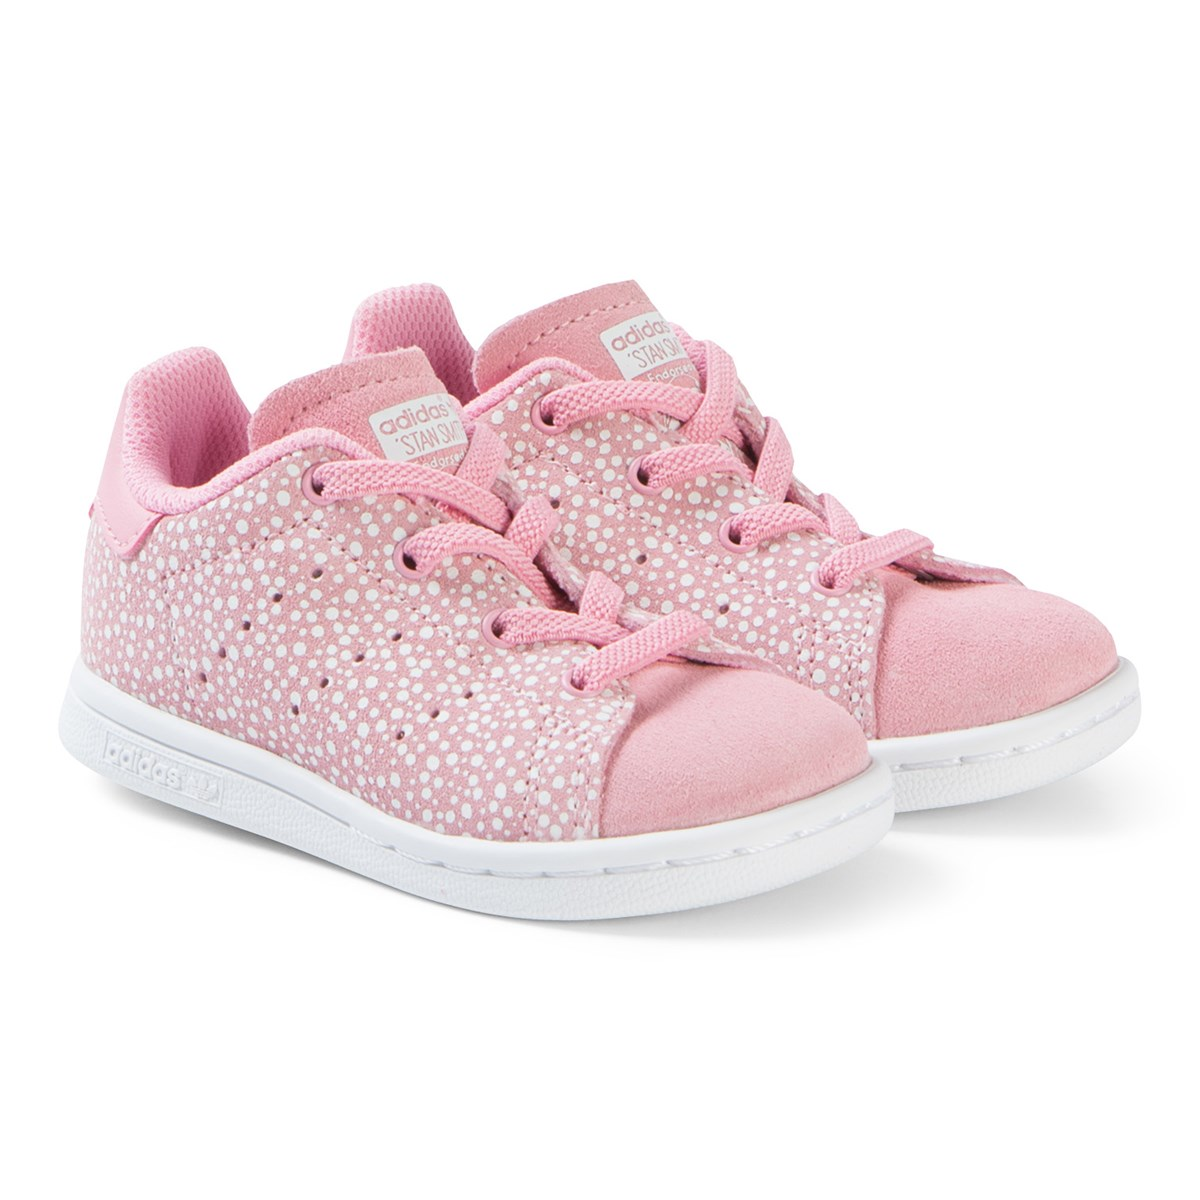 sale retailer a8267 72d6b adidas Originals - Pink and White Stan Smith Sneakers - Babyshop.com